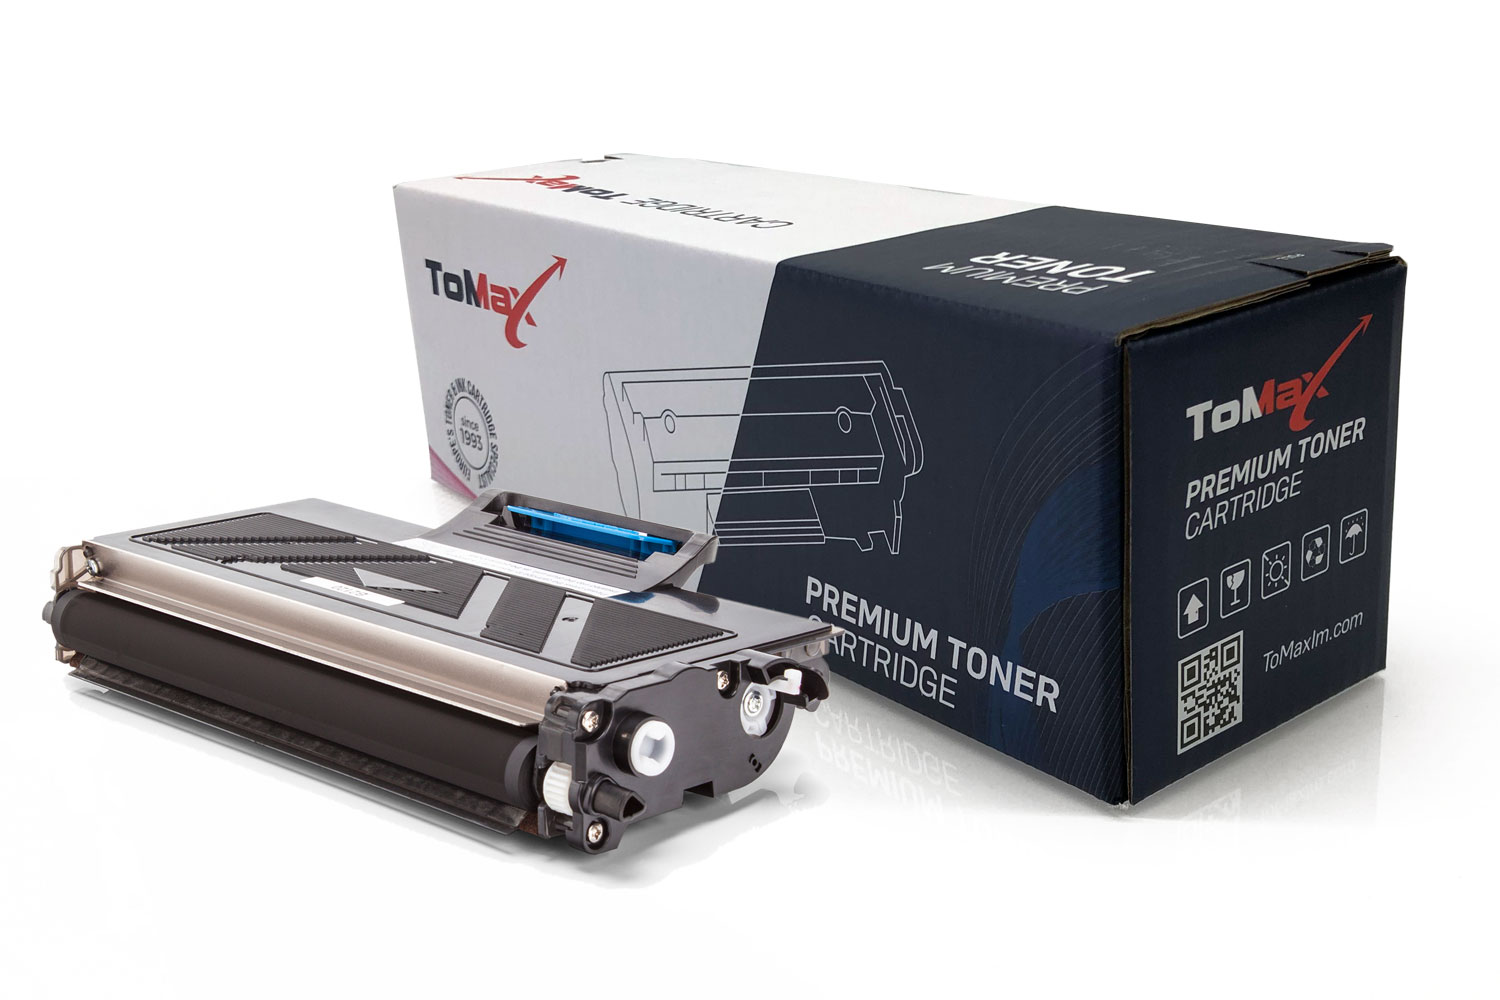 ToMax Premium Toner Cartridge replaces OKI 44469704 / C310 Yellow